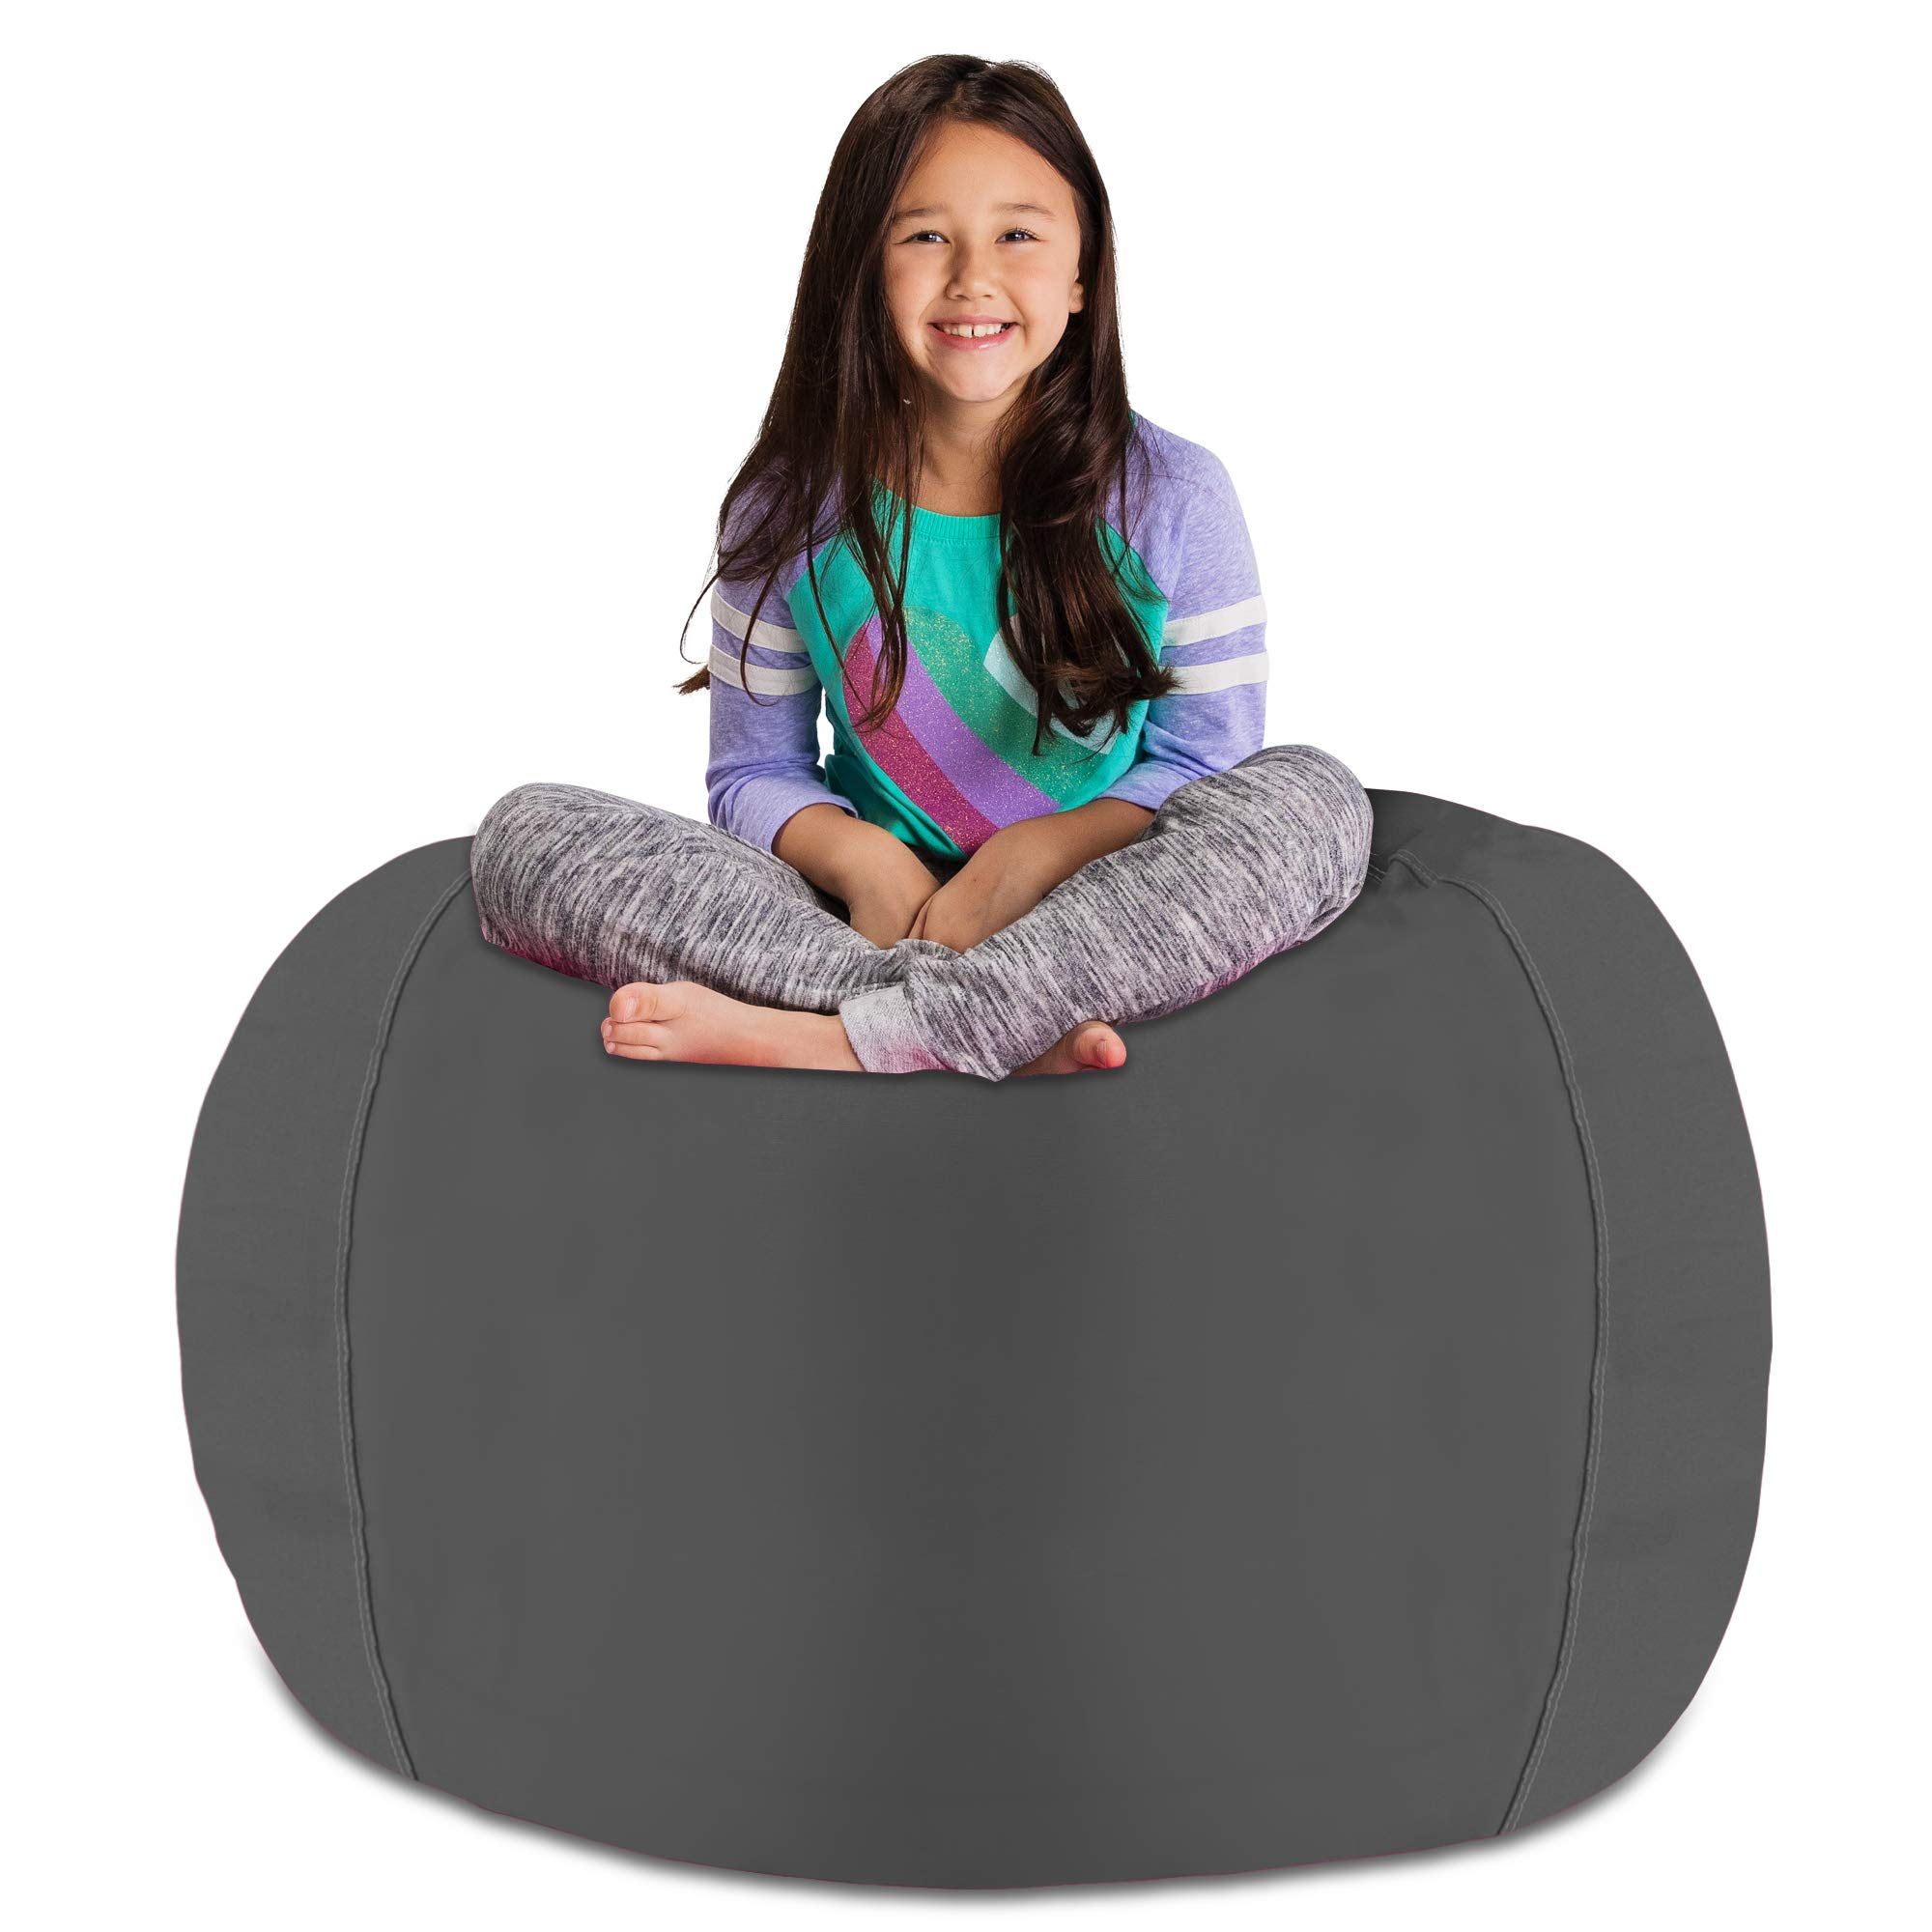 Posh Stuffable Kids Stuffed Animal Storage Bean Bag Chair Cover - Childrens Toy Organizer, X-Large 48'' - Heather Gray by Posh Stuffable